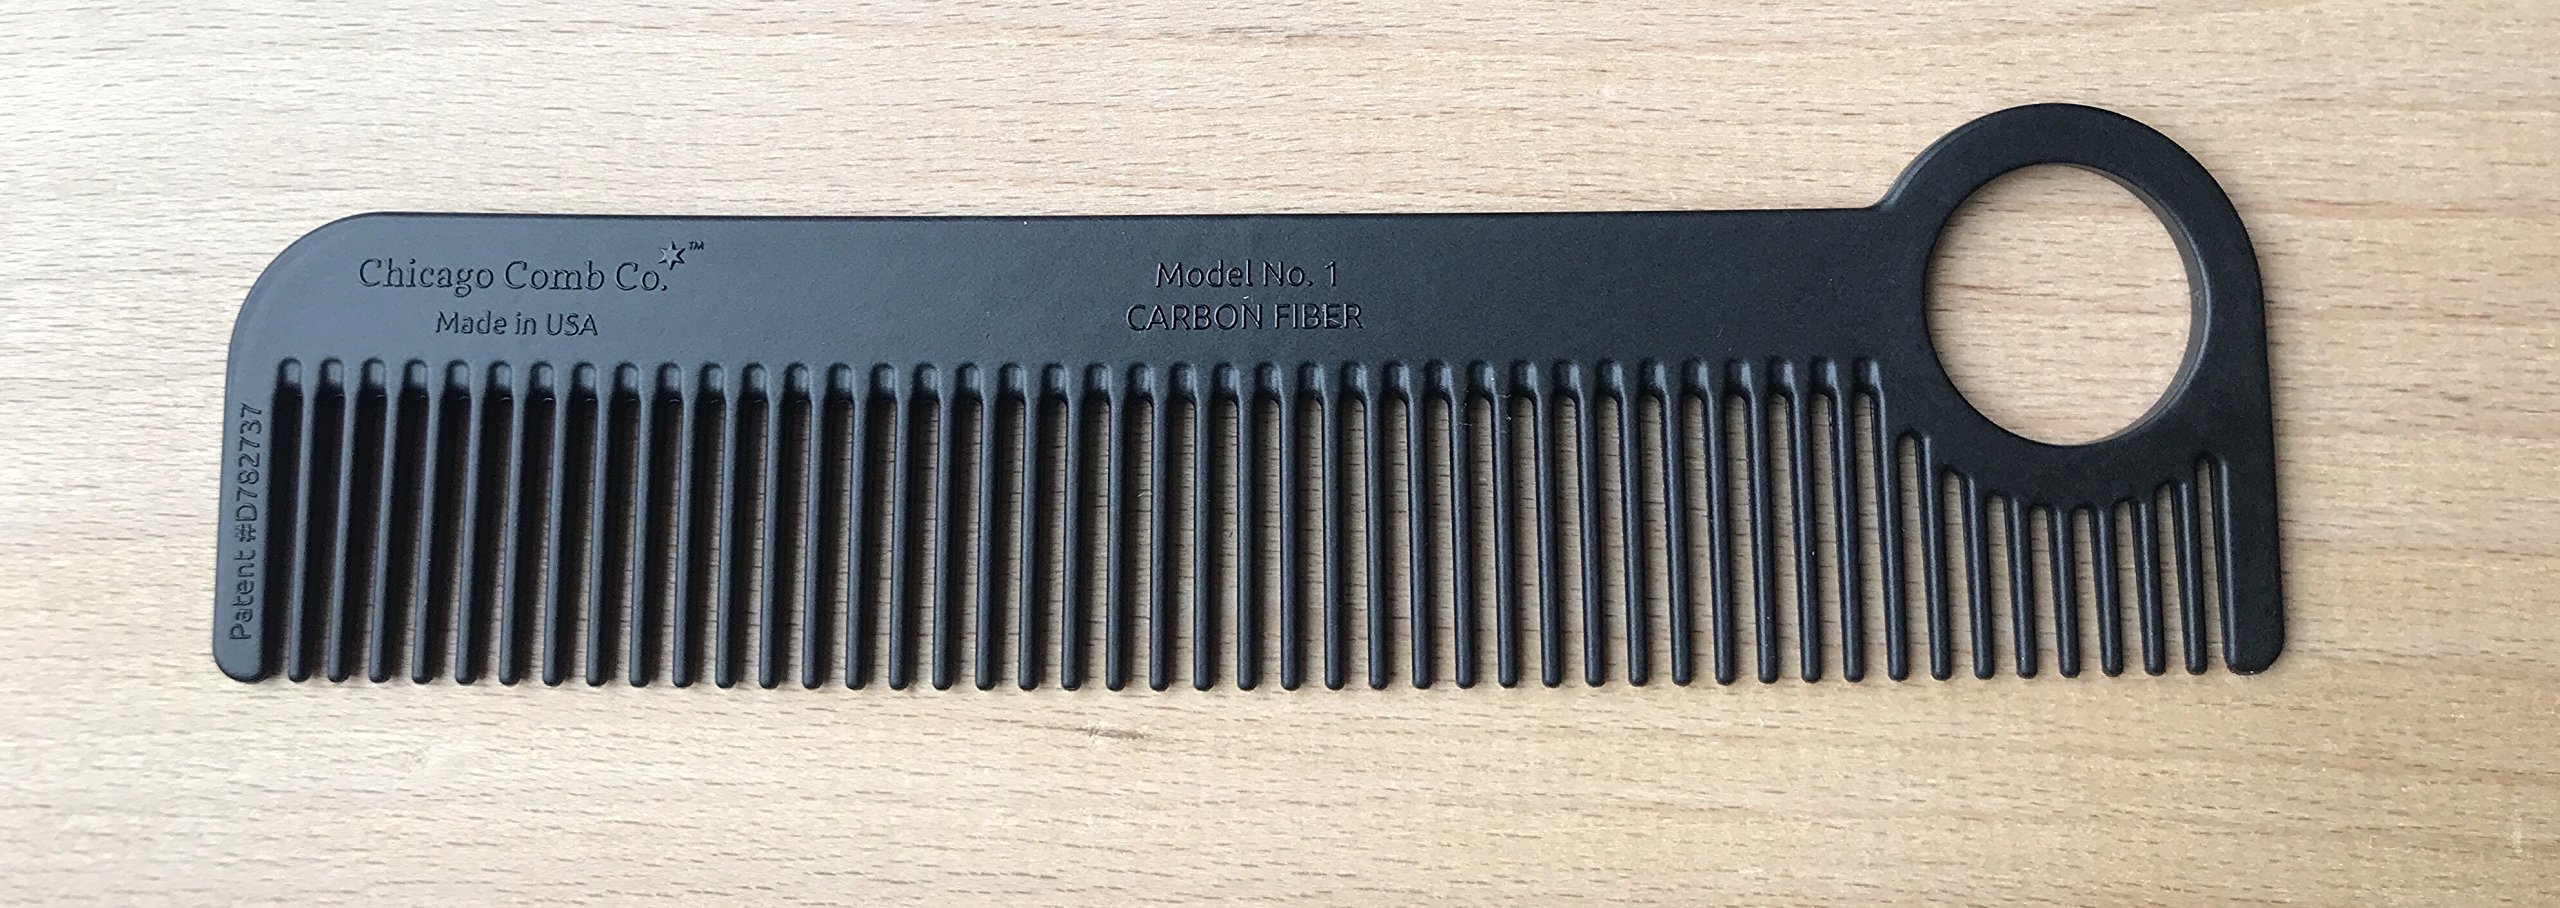 Chicago Comb Model 1 Carbon Fiber, Made in USA, ultra smooth, strong, and light, anti-static, heat-resistant, 5.5 inches (14 cm) long, ultimate daily use, pocket, and travel comb by Chicago Comb (Image #2)